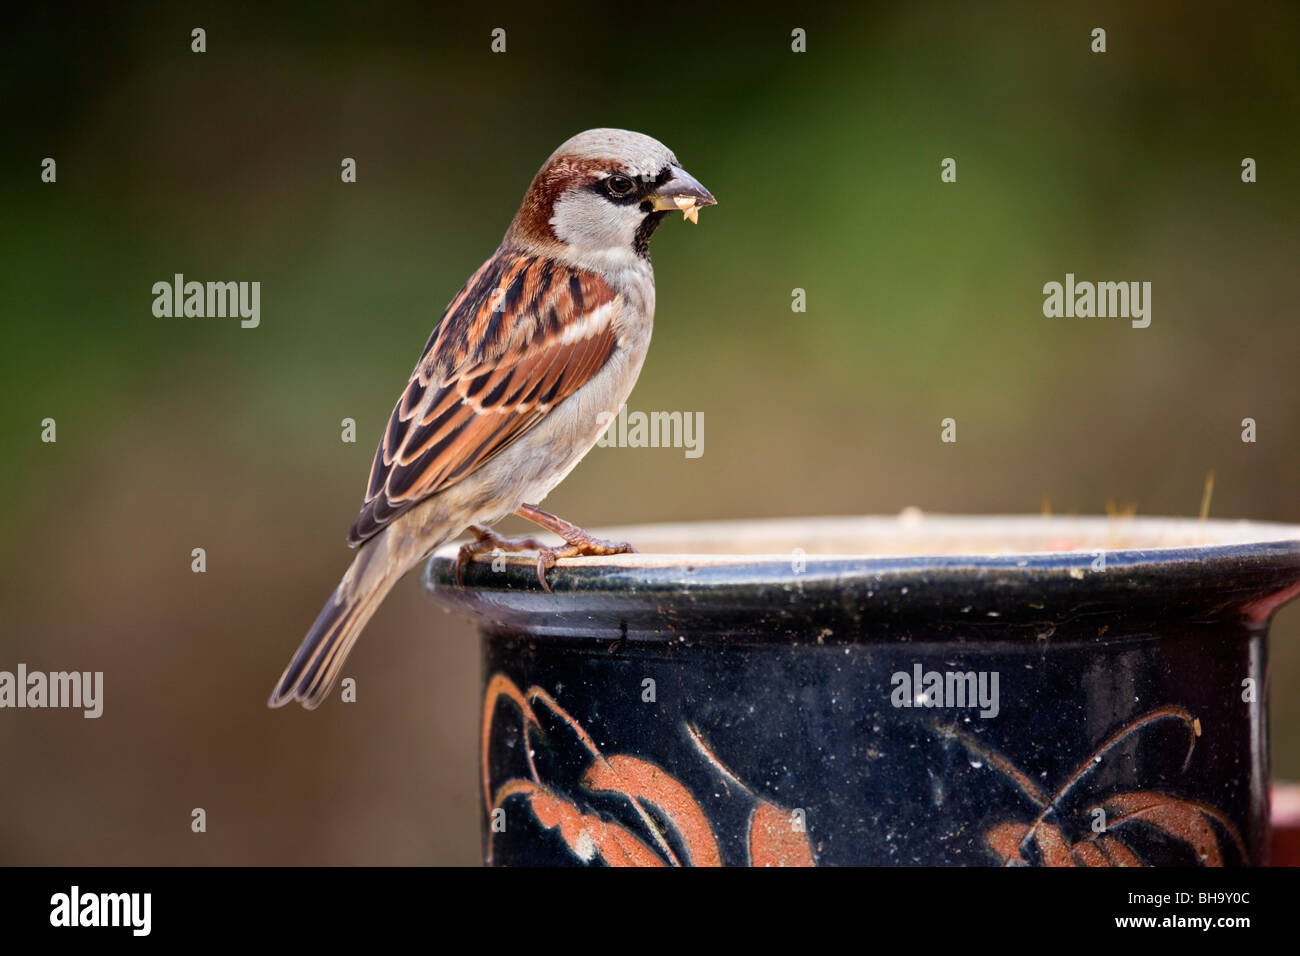 House Sparrow; Passer domesticus; male; on plant pot - Stock Image